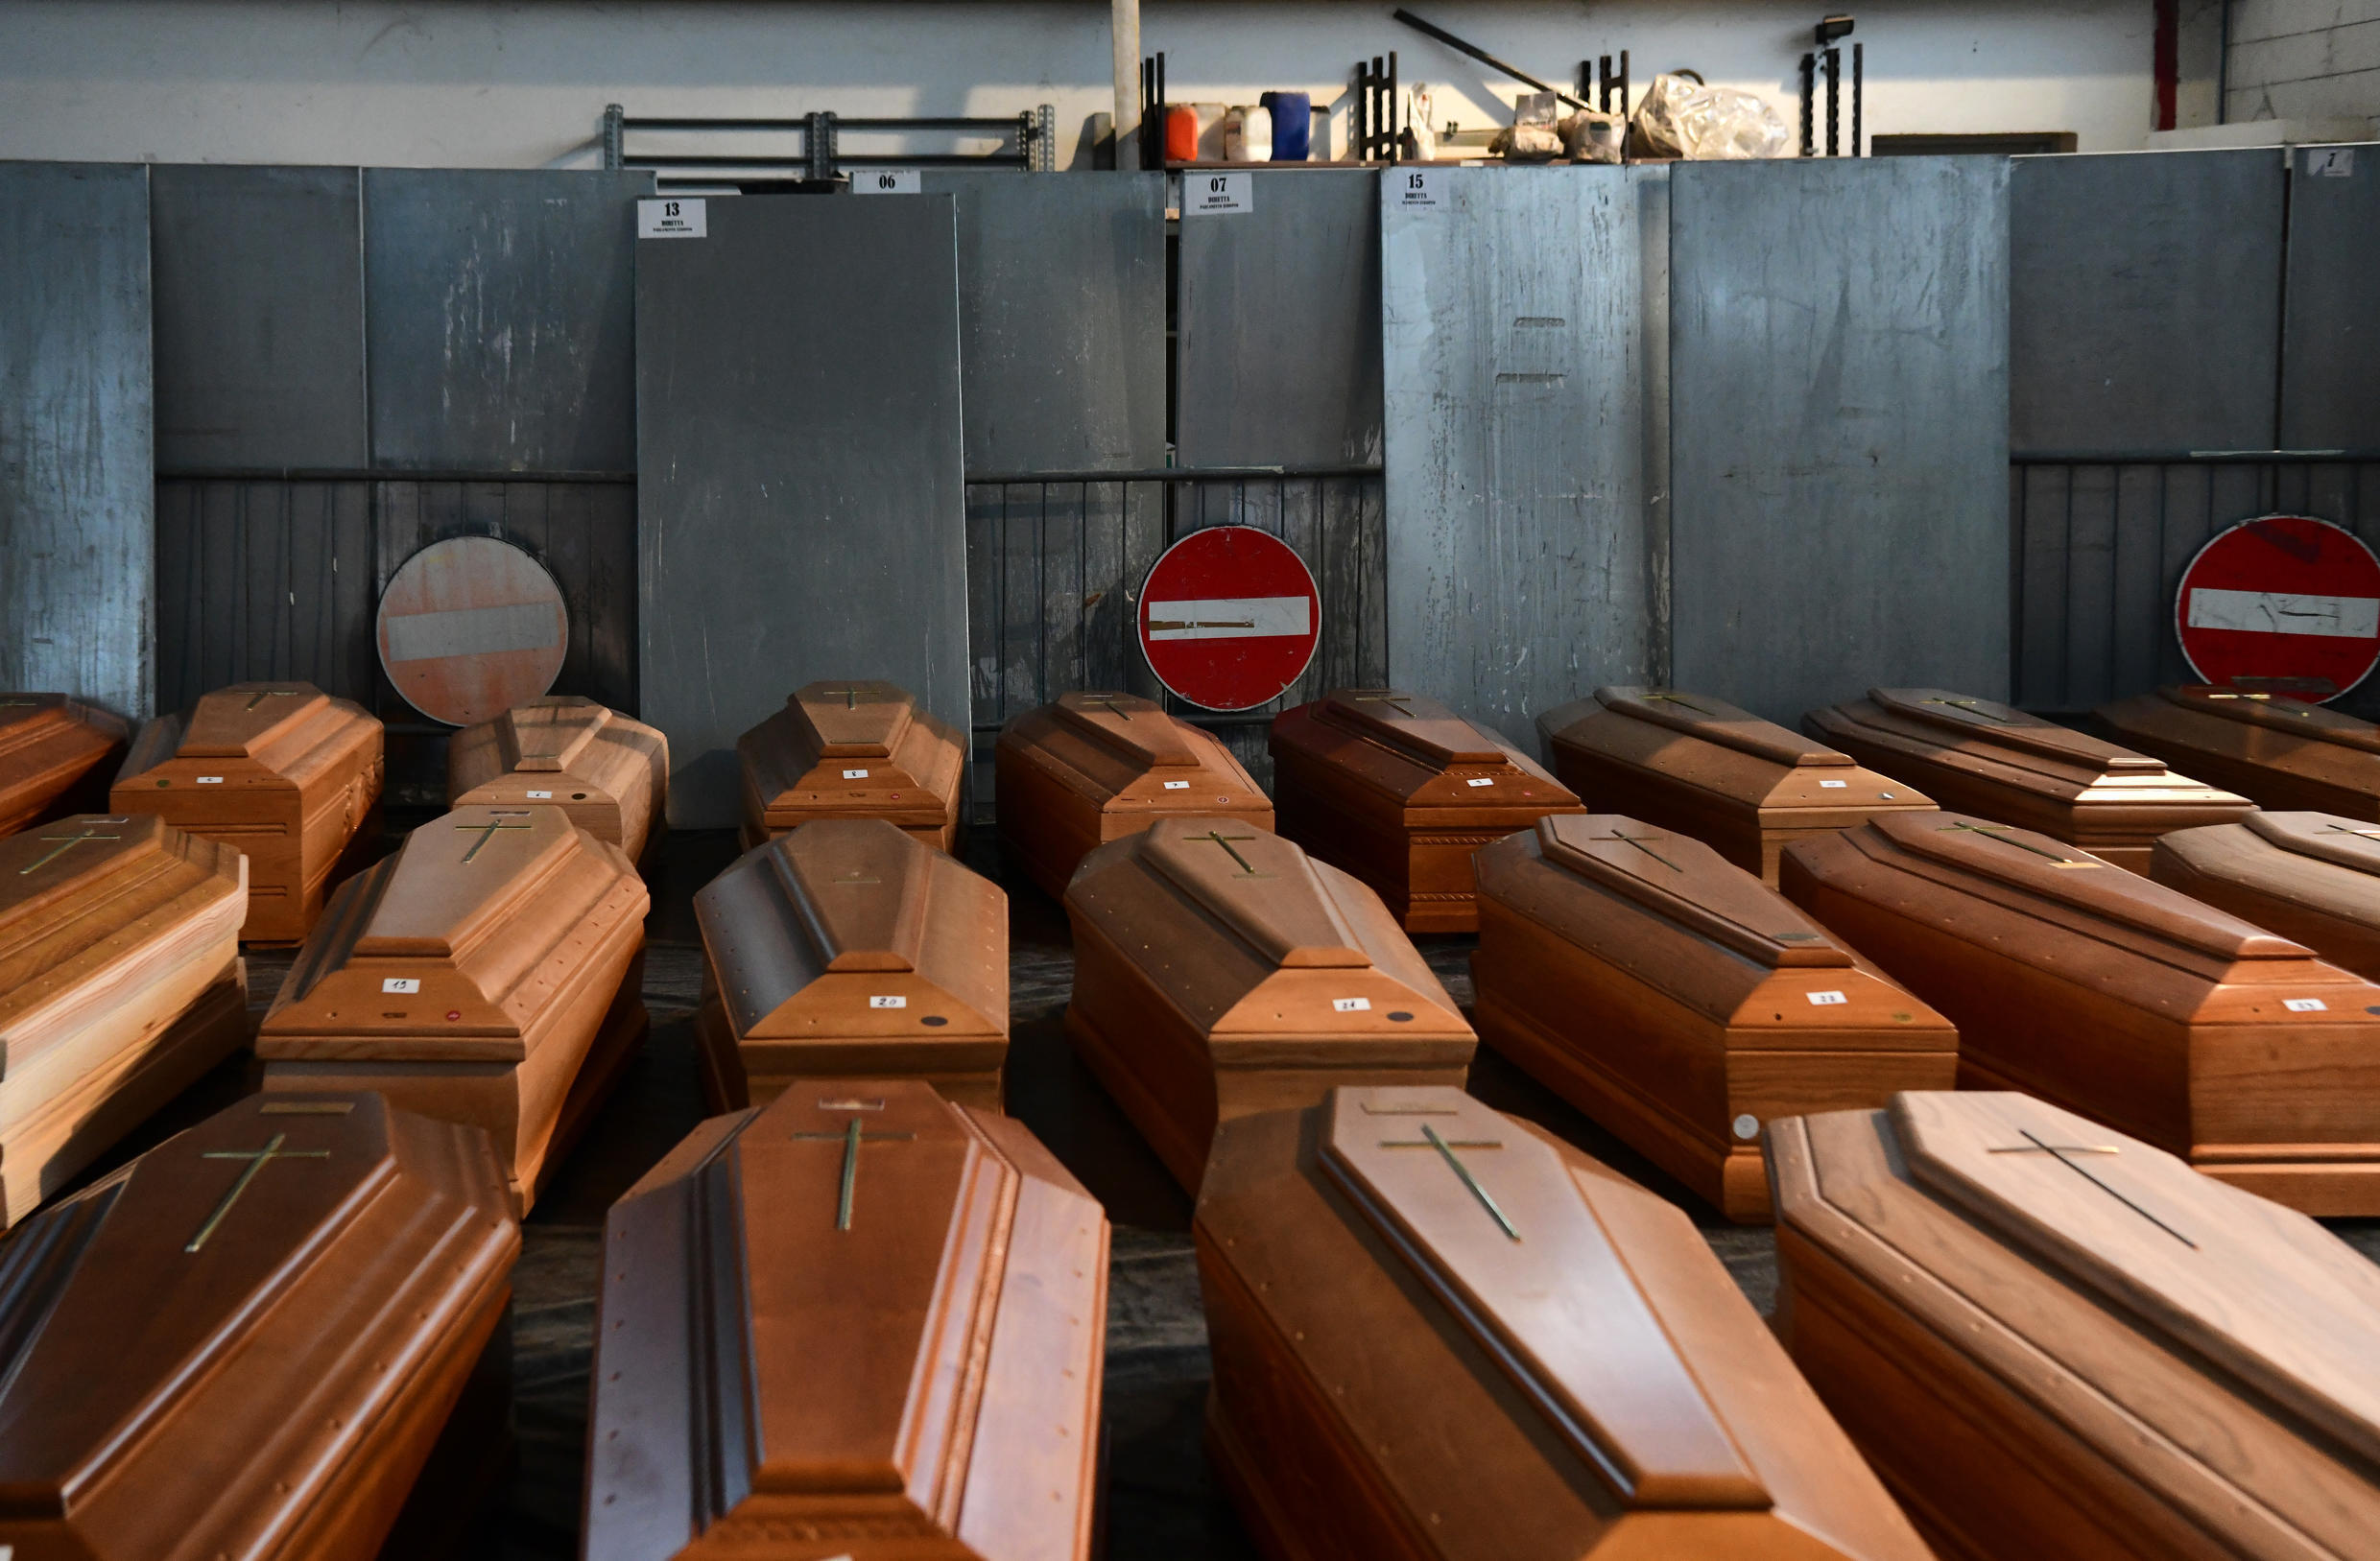 The endless flood of victims has forced the city of Bergamo to send bodies to less burdened crematoriums, sometimes hundreds of kilometres away.